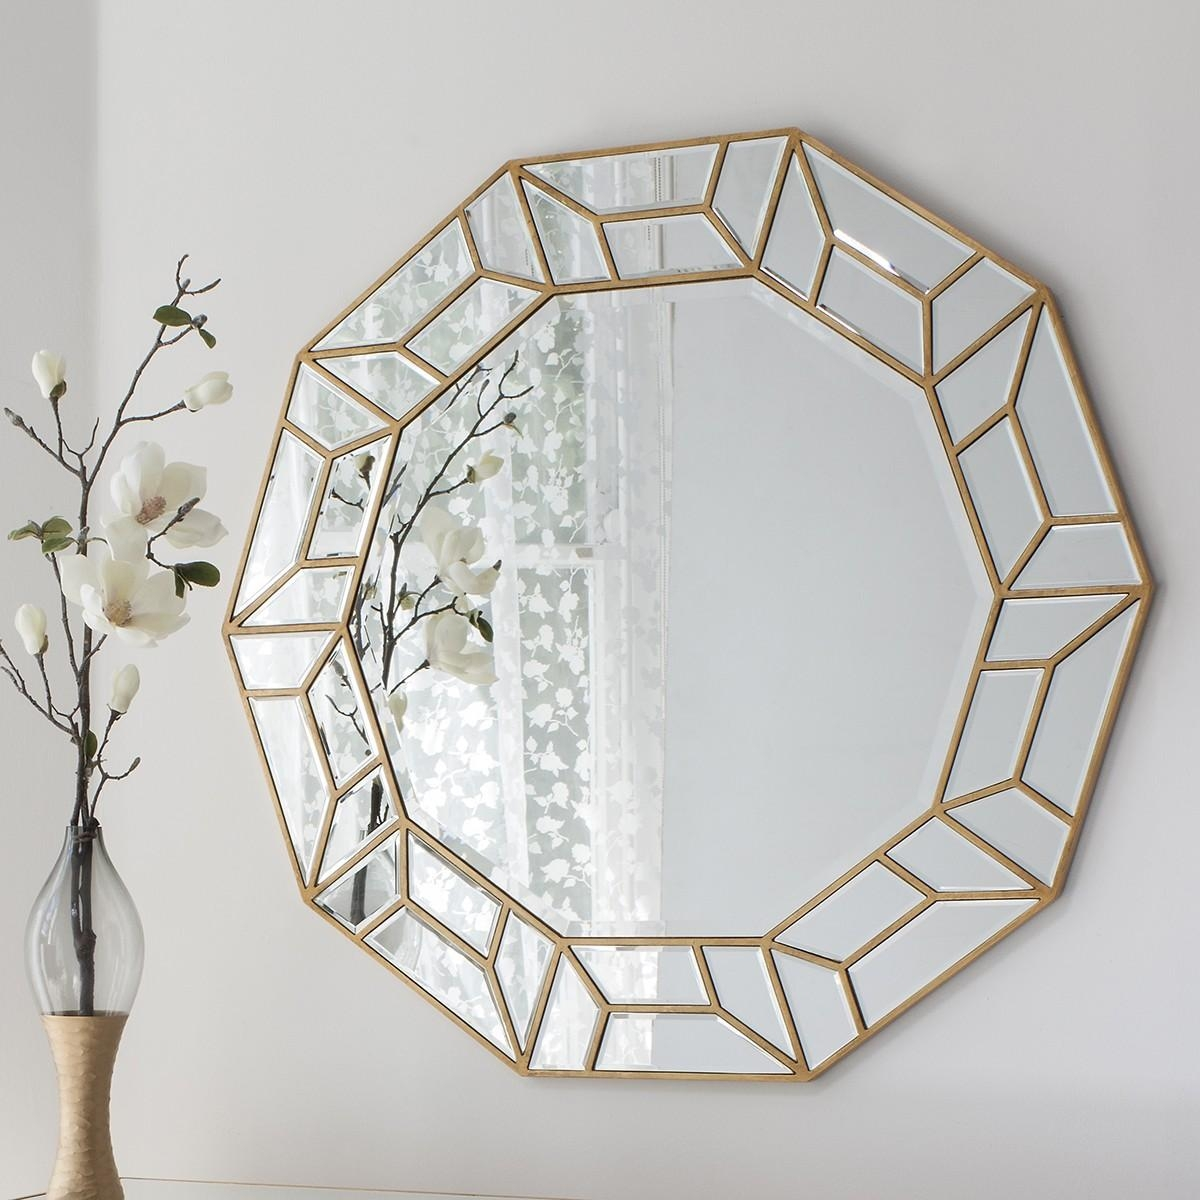 D'or Art Deco Mirror From £349 – Luxury Wall Mirrors | Ashden Road With Art Deco Style Mirrors (View 15 of 20)